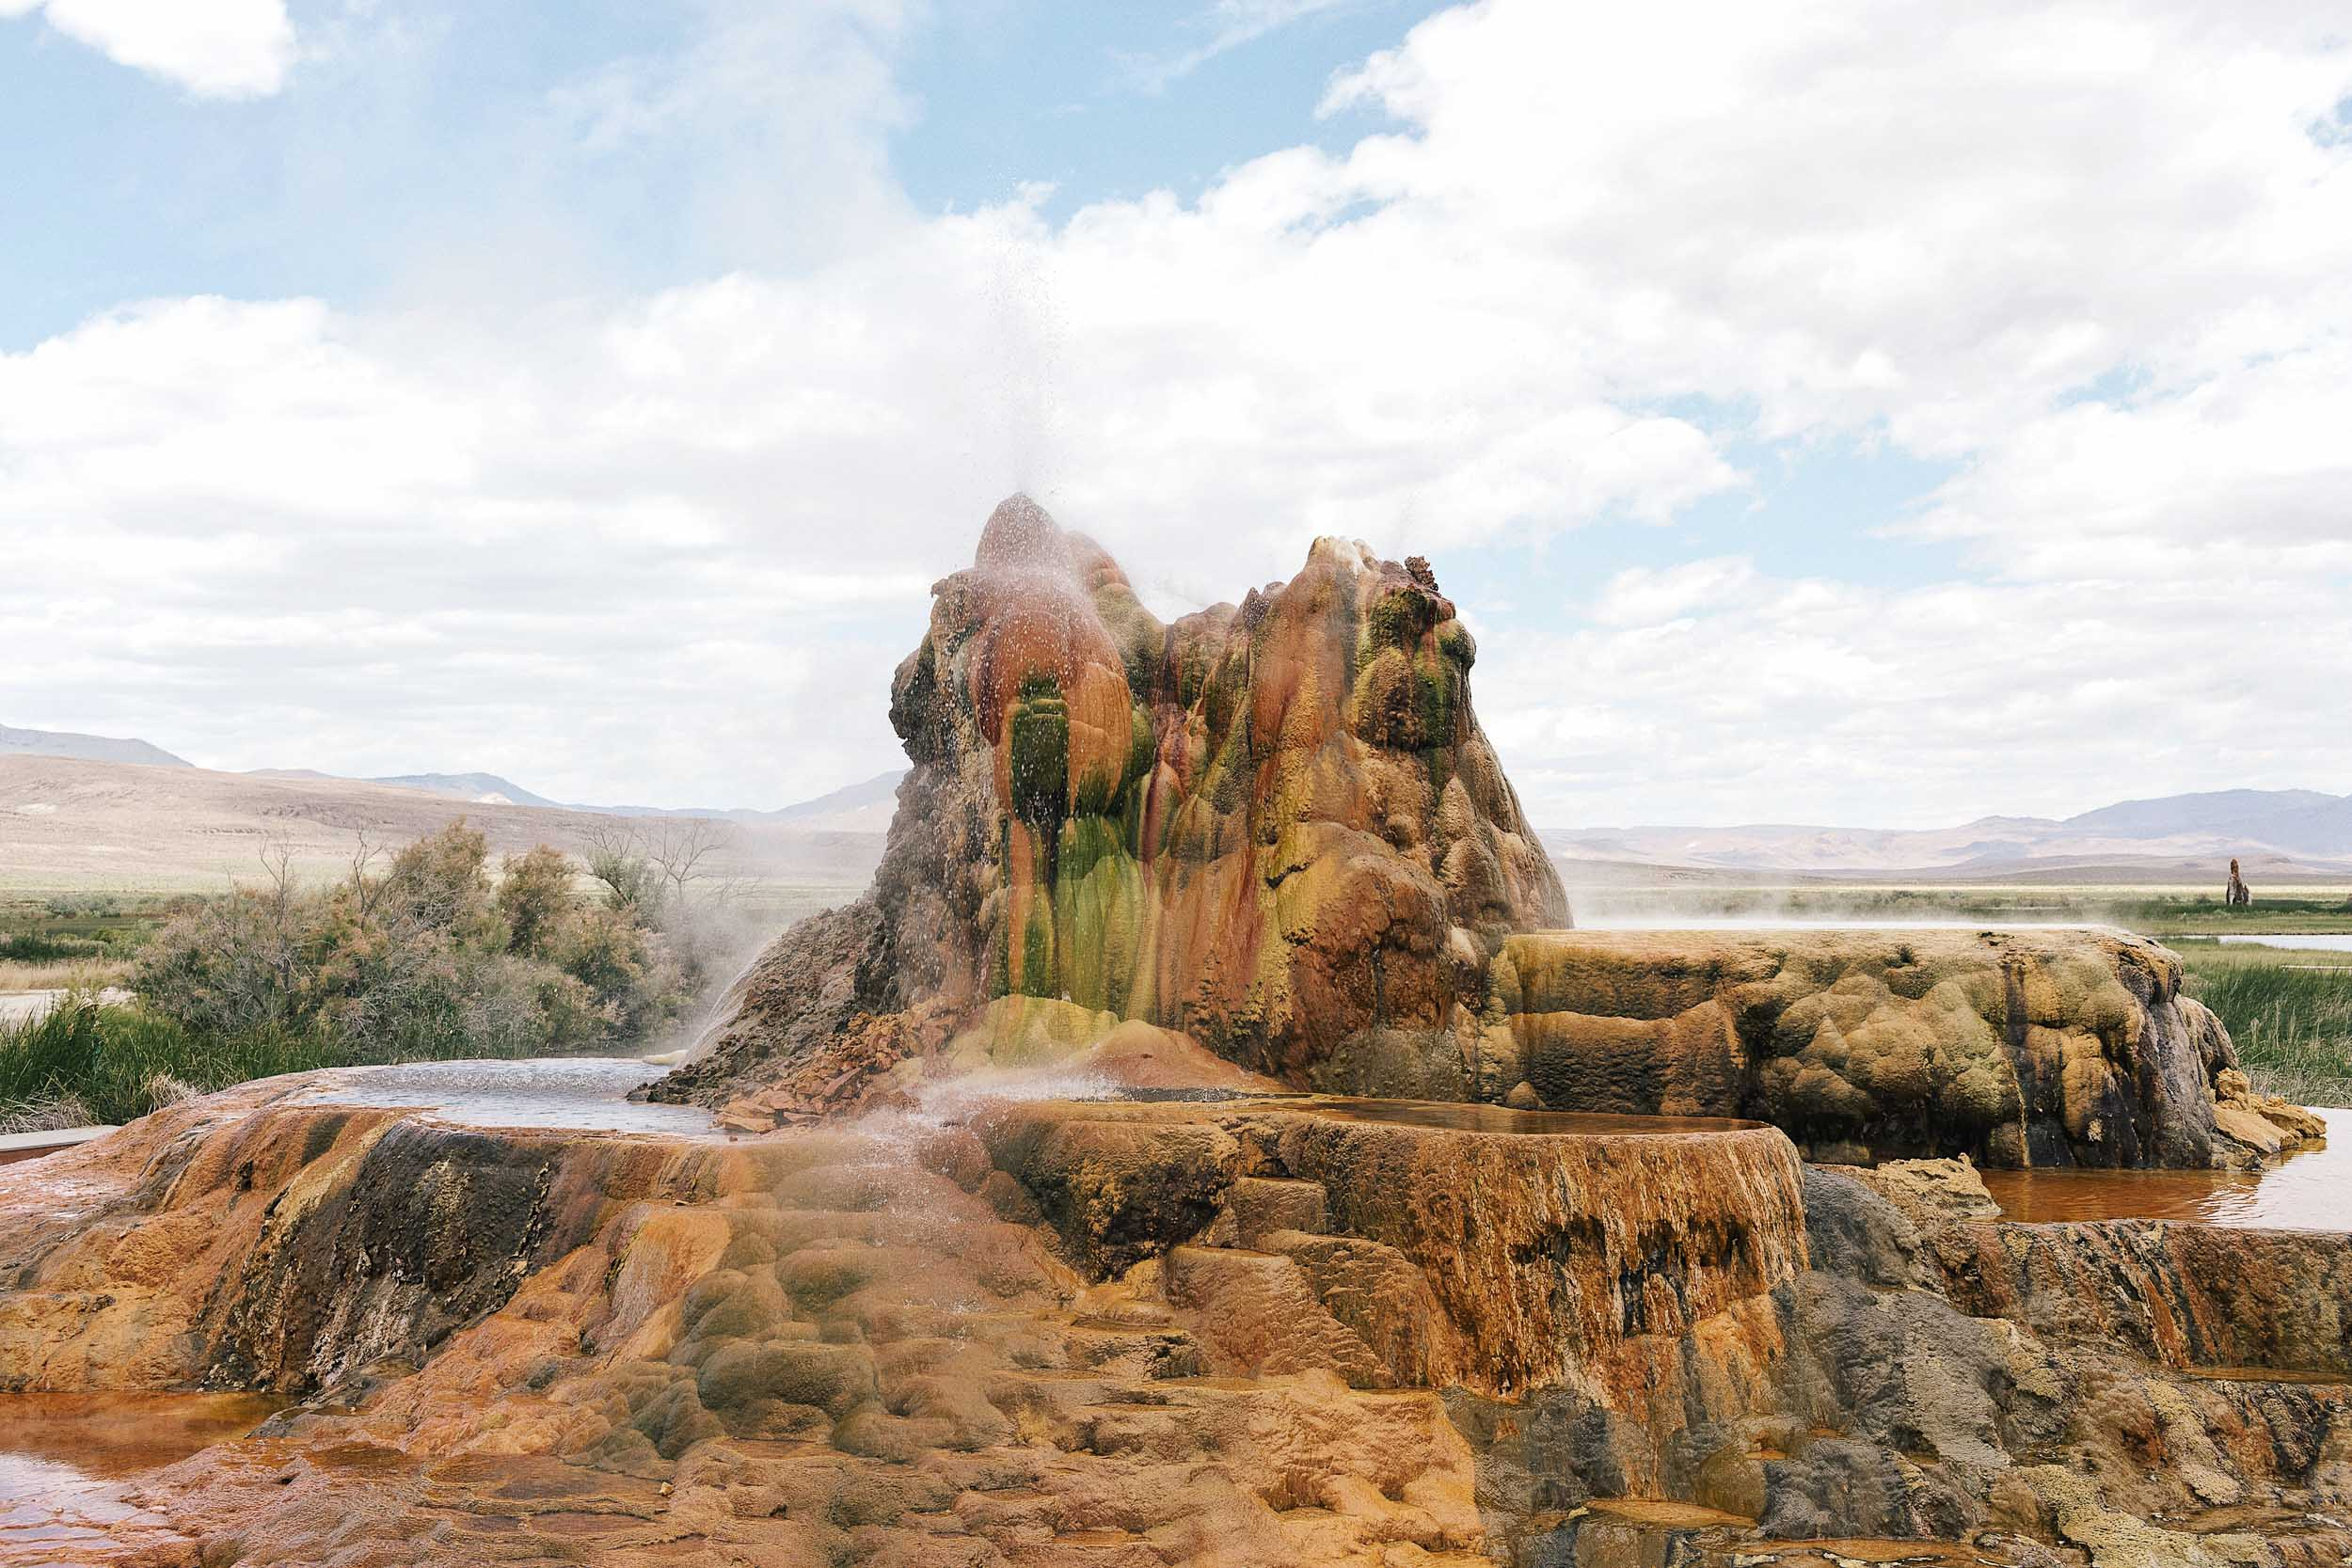 Fly Geyser - the most amazing natural wonder in Nevada